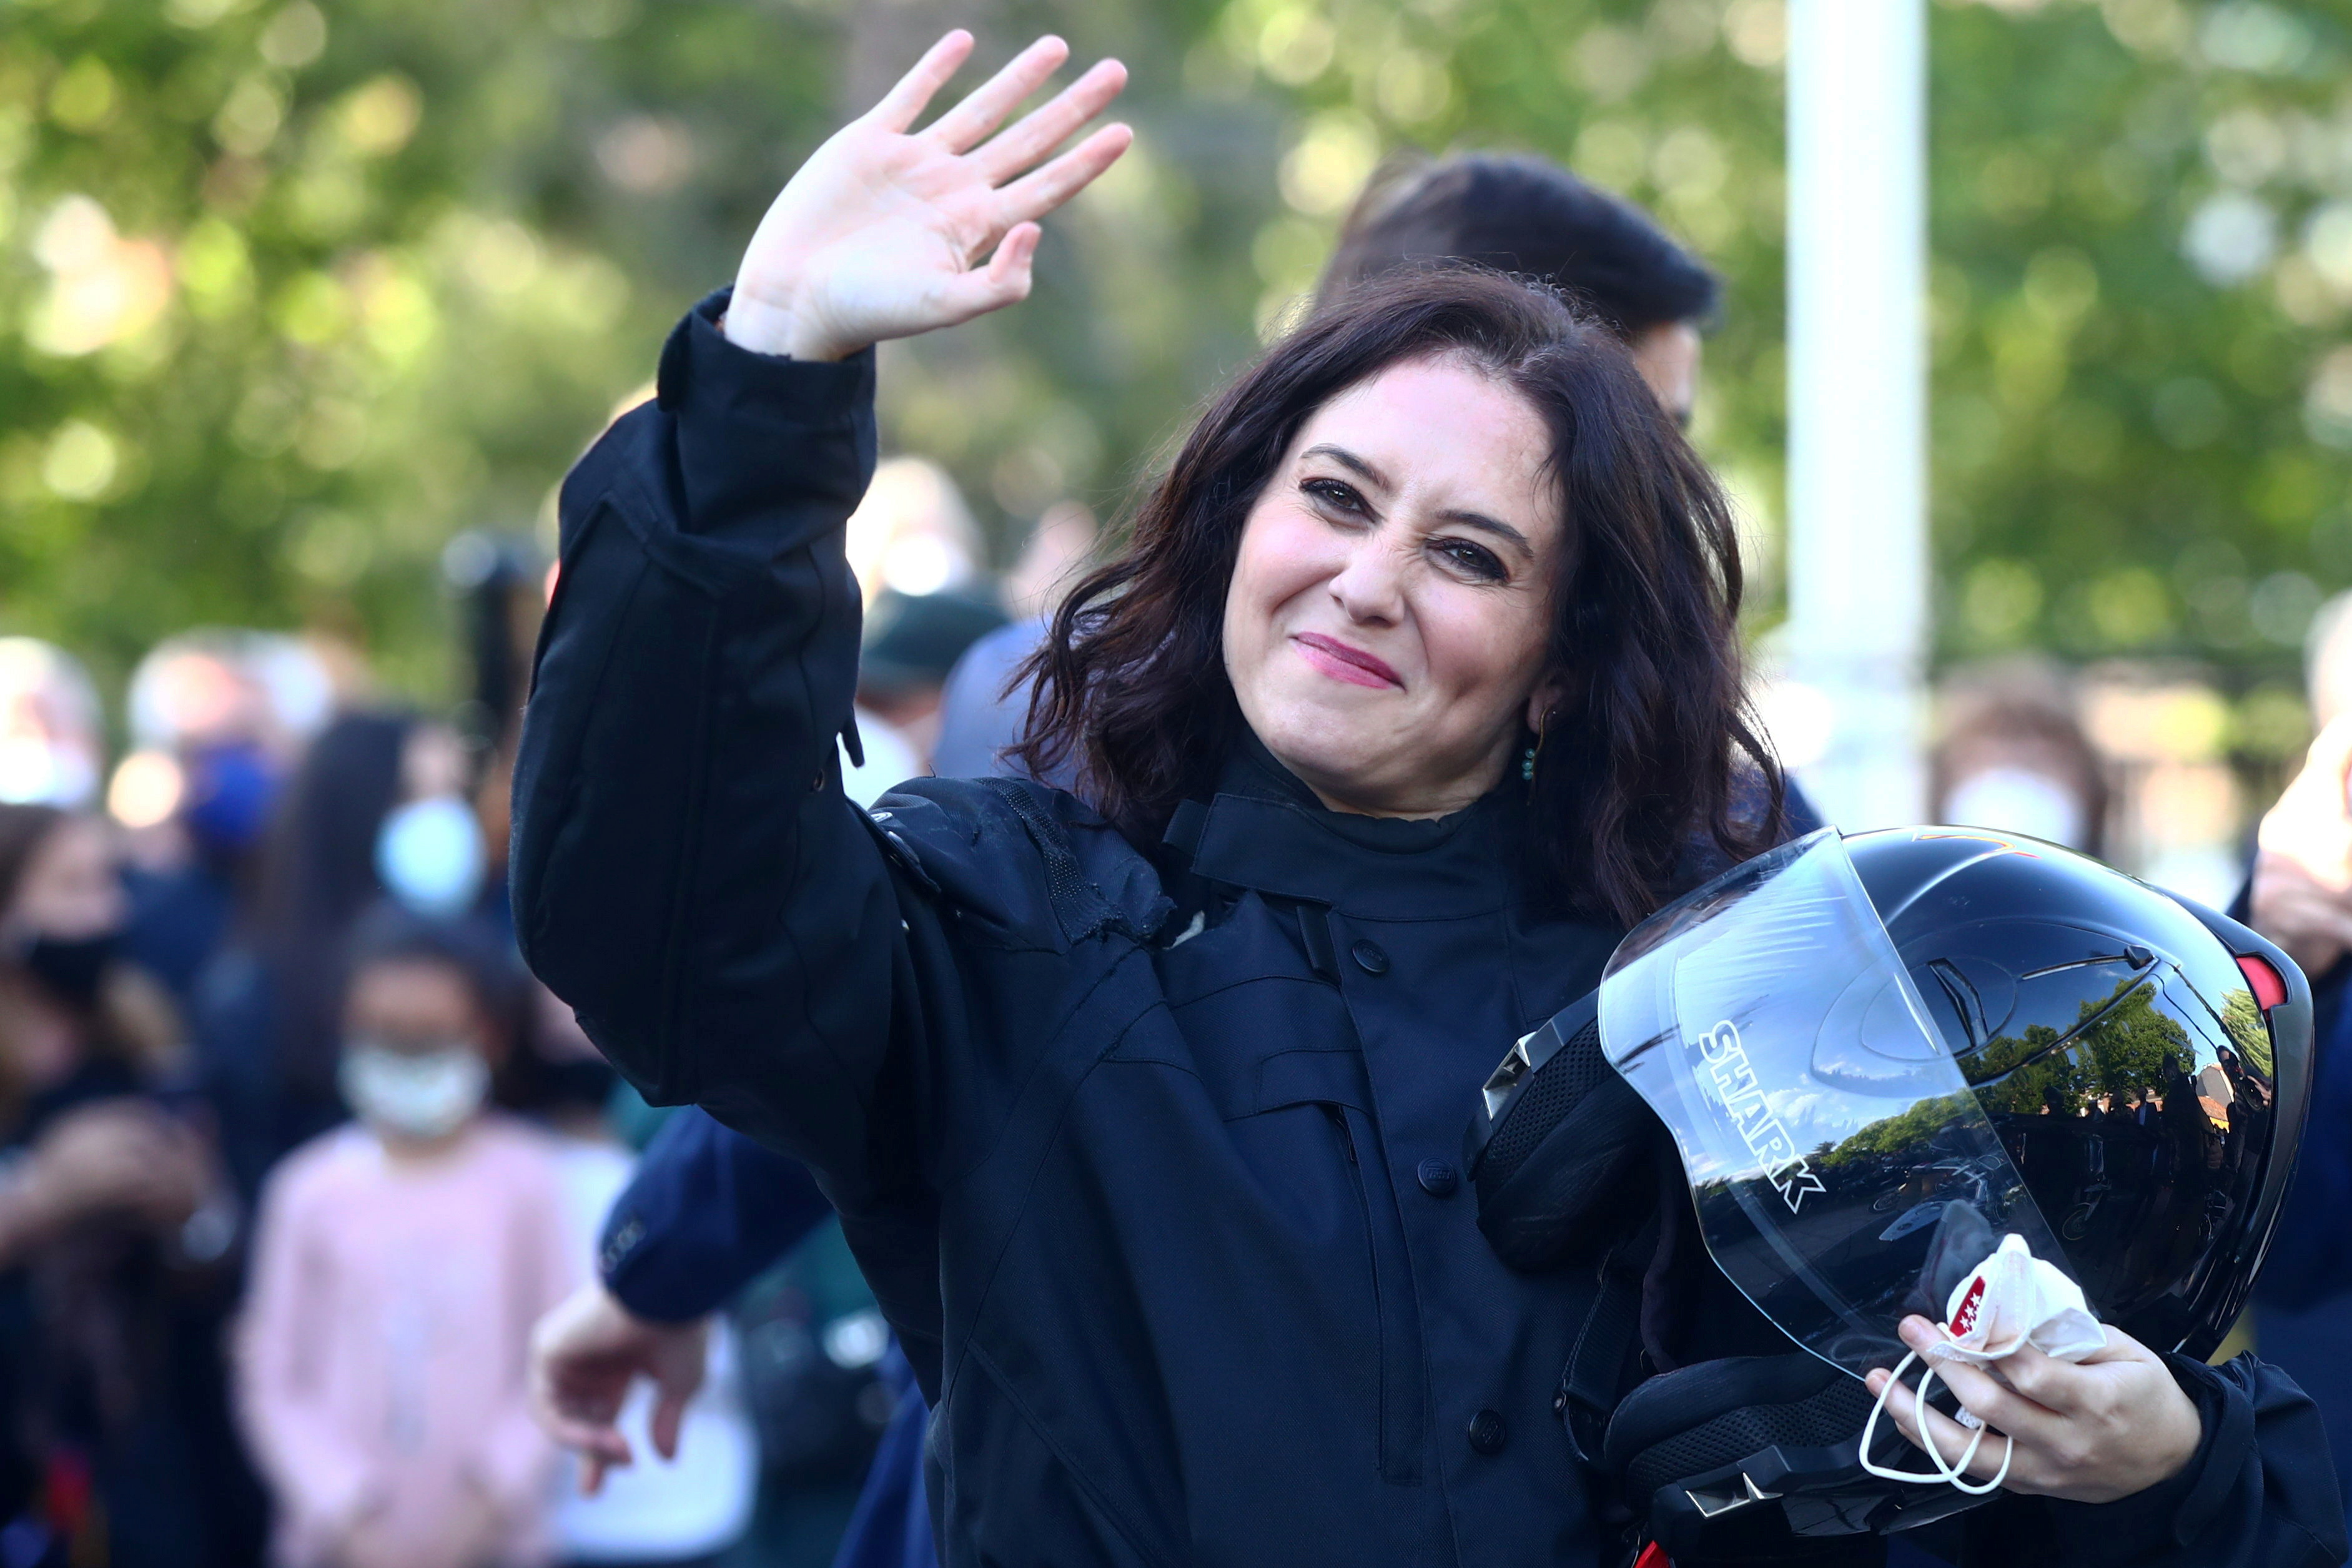 Madrid regional government leader Isabel Diaz Ayuso waves to supporters upon arriving by motorbike to an electoral event ahead upcoming regional elections in Valdemoro, Spain, April 29, 2021. REUTERS/Sergio Perez